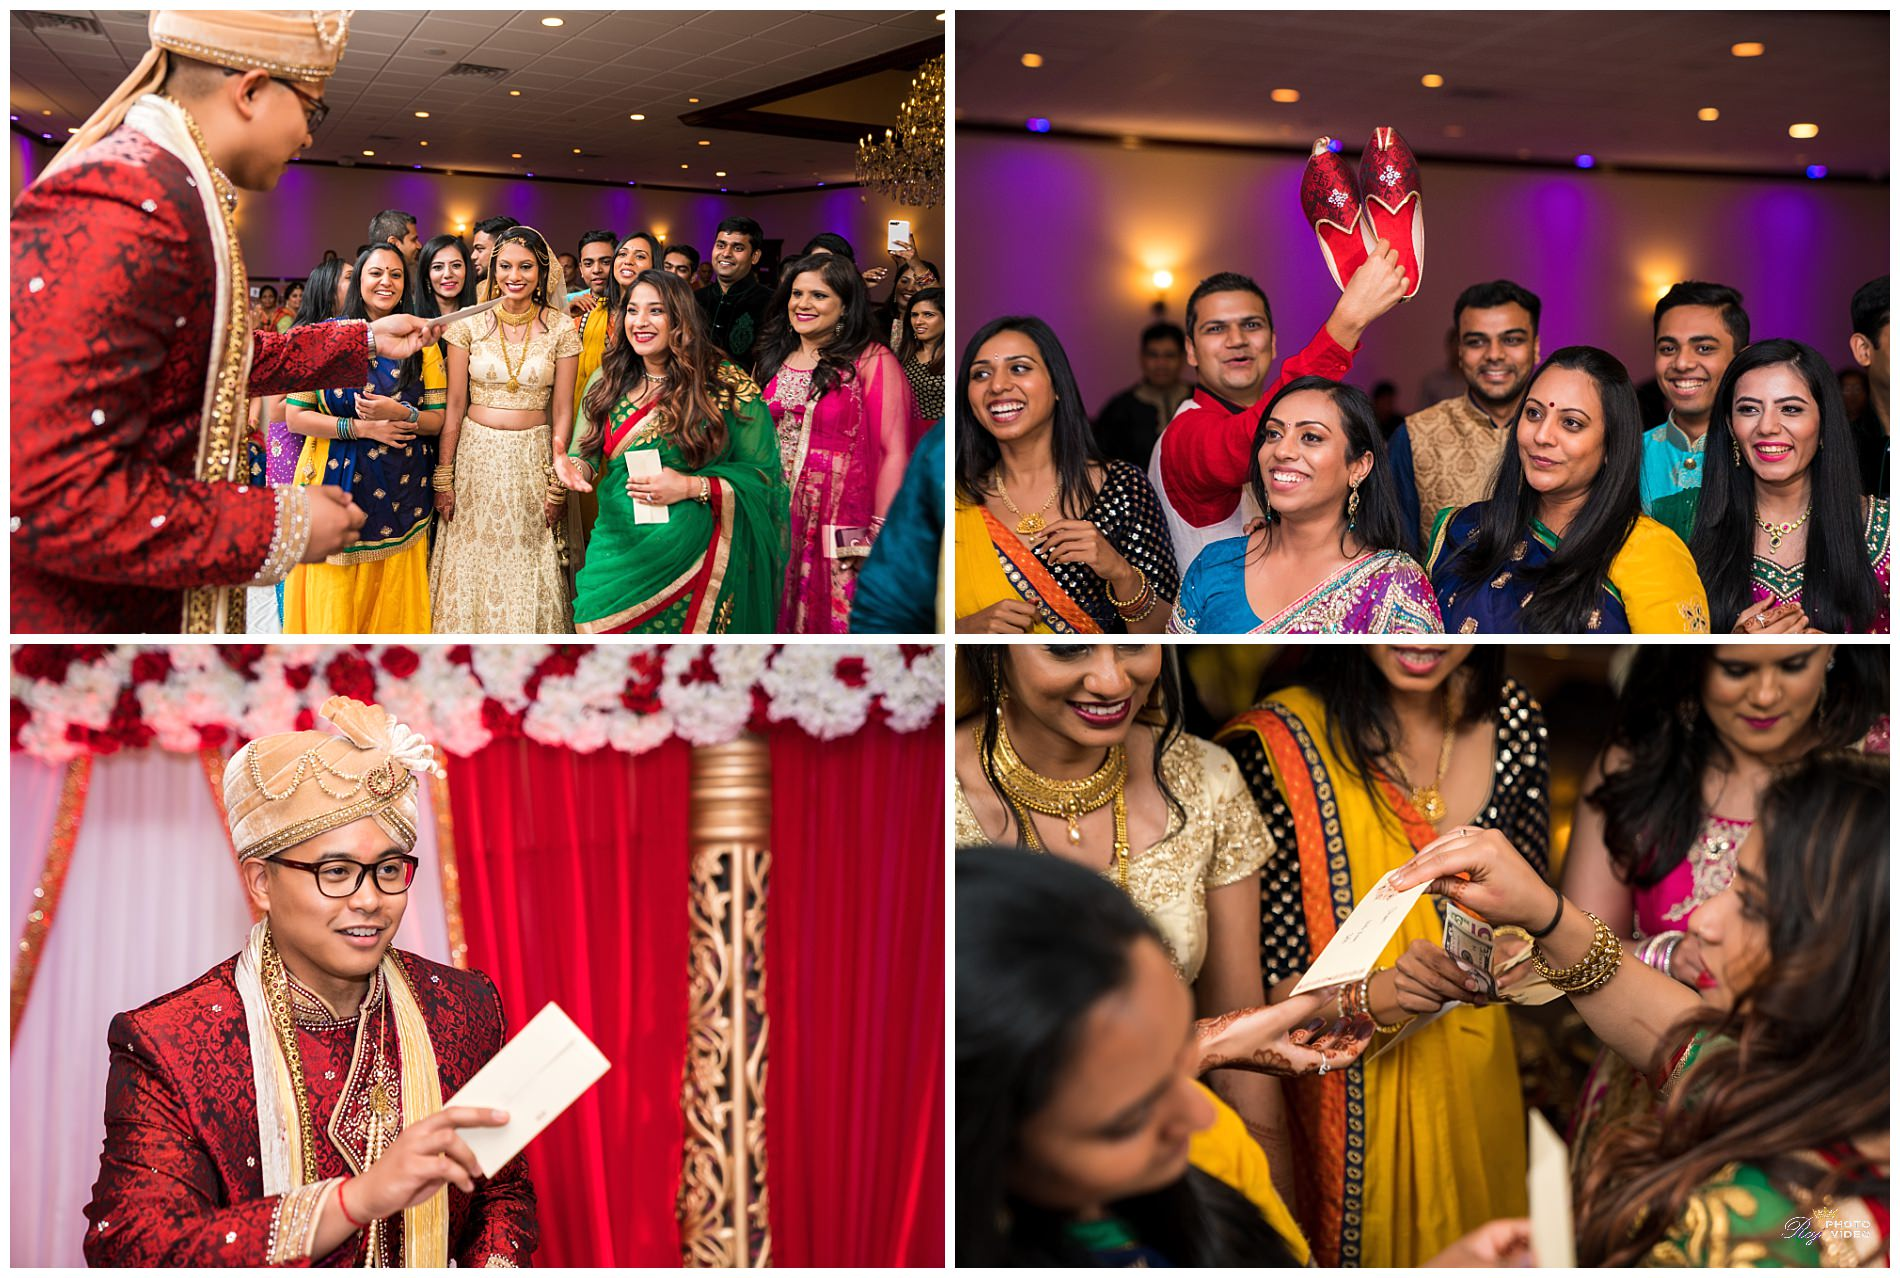 Aashirwad-Palace-Randolph-NJ-Hindu-Wedding-Ceremony-Khusbu-Jeff-25.jpg